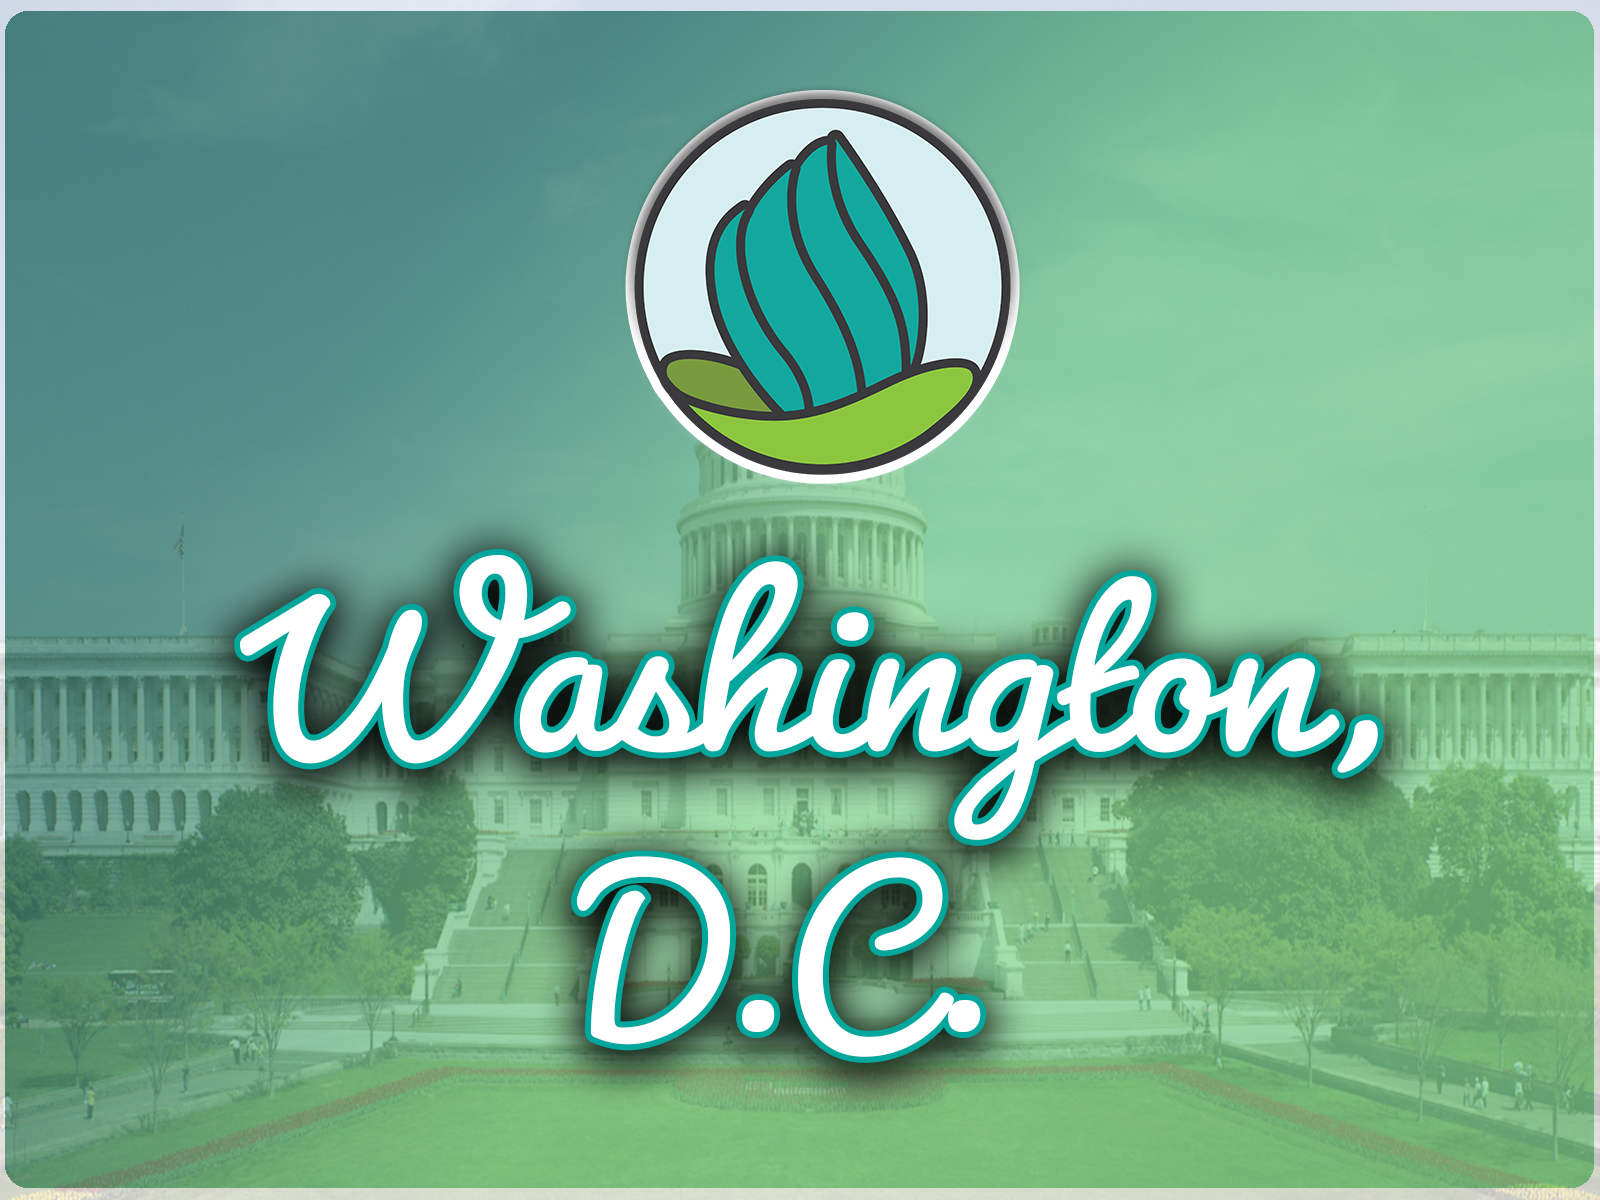 """The words """"AtlThe words """"Washington, D.C."""" underneath the NDC logo, a teal torch coming out of a green vase, with a faded image of DC in the background under a teal wash."""